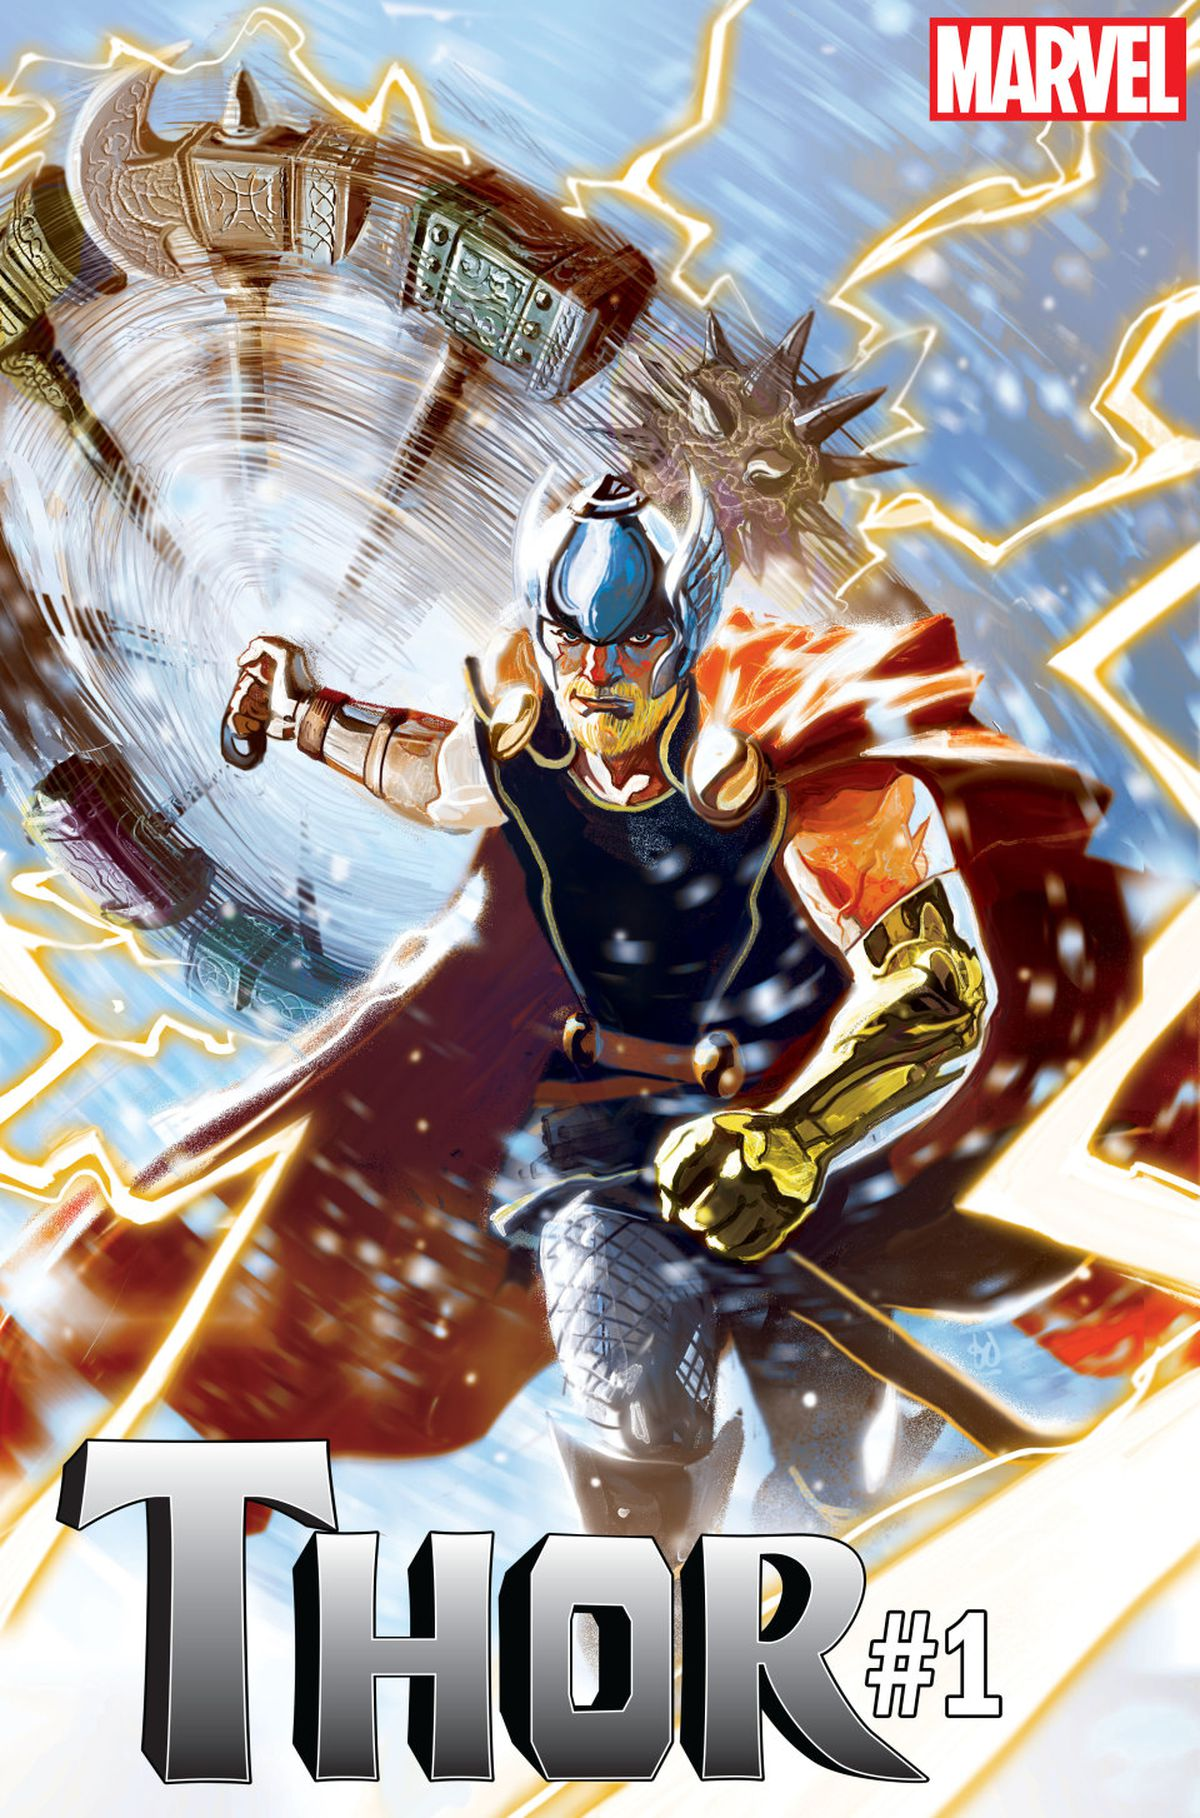 Marvel Will Make Thor The God Of Thunder Again In Thor 1